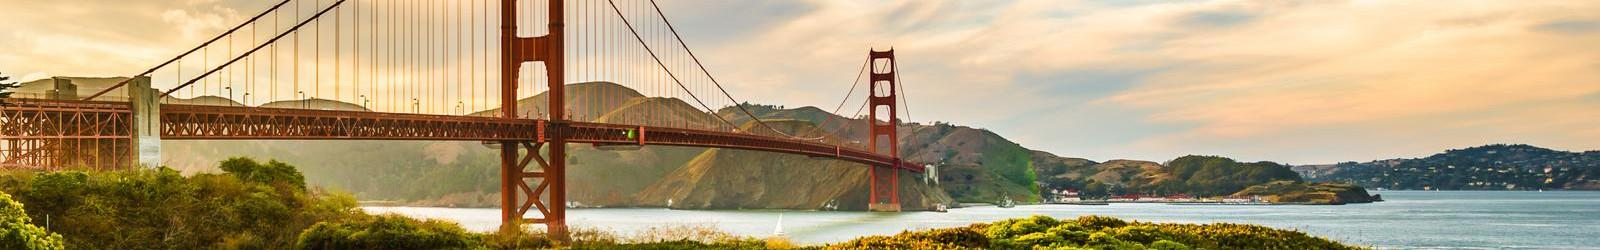 ADHD therapists in San Francisco, California